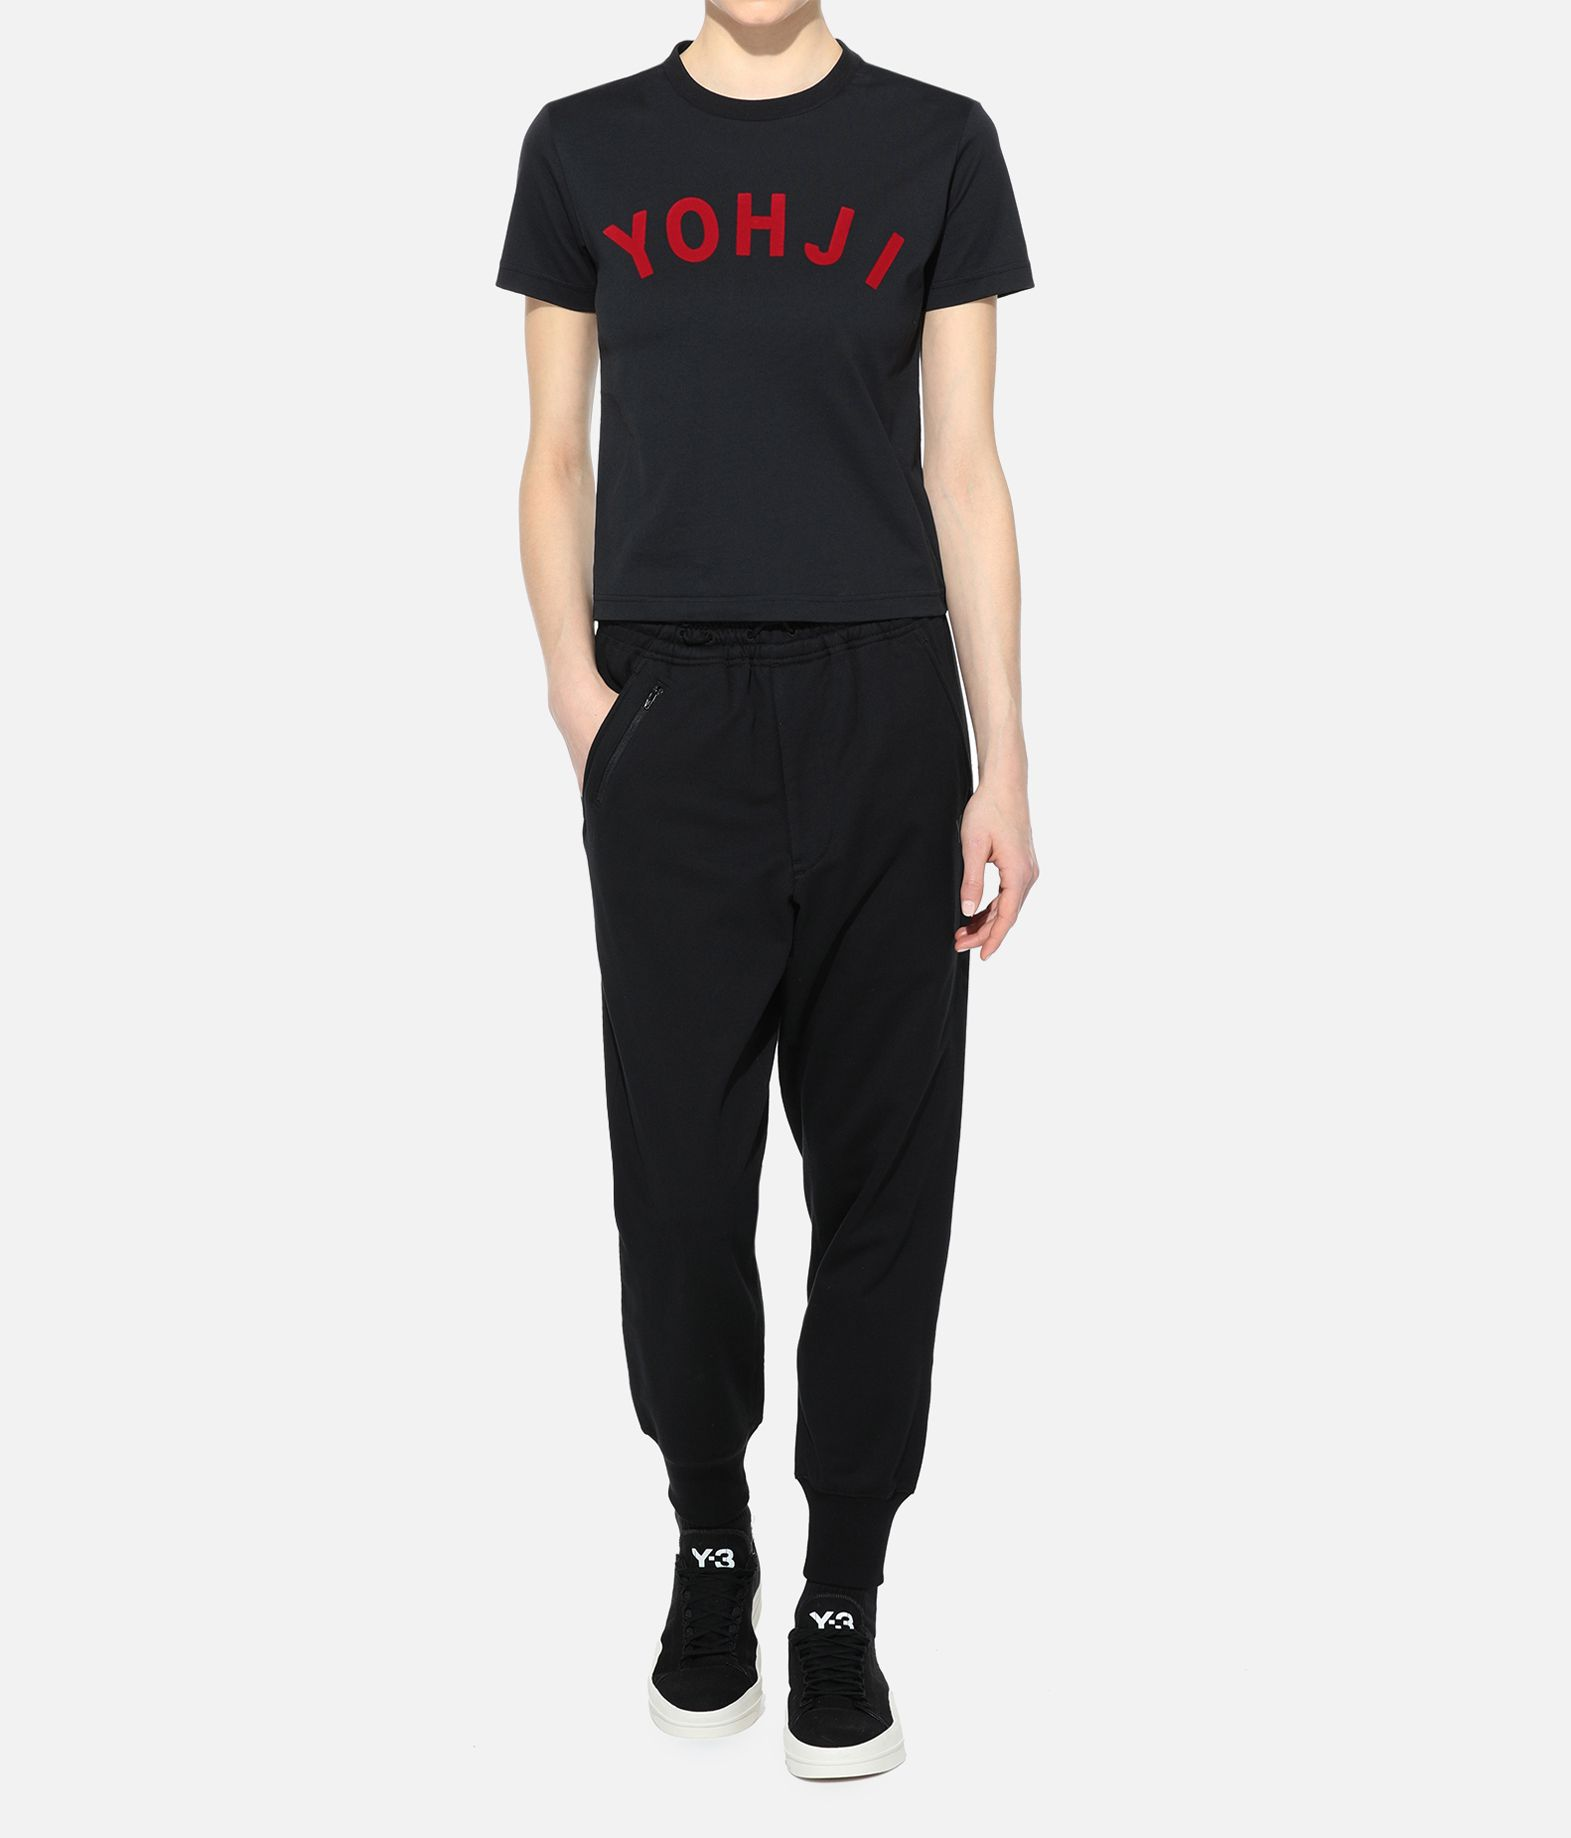 Y-3 Y-3 Classic Cuffed Pants Casual pants Woman a